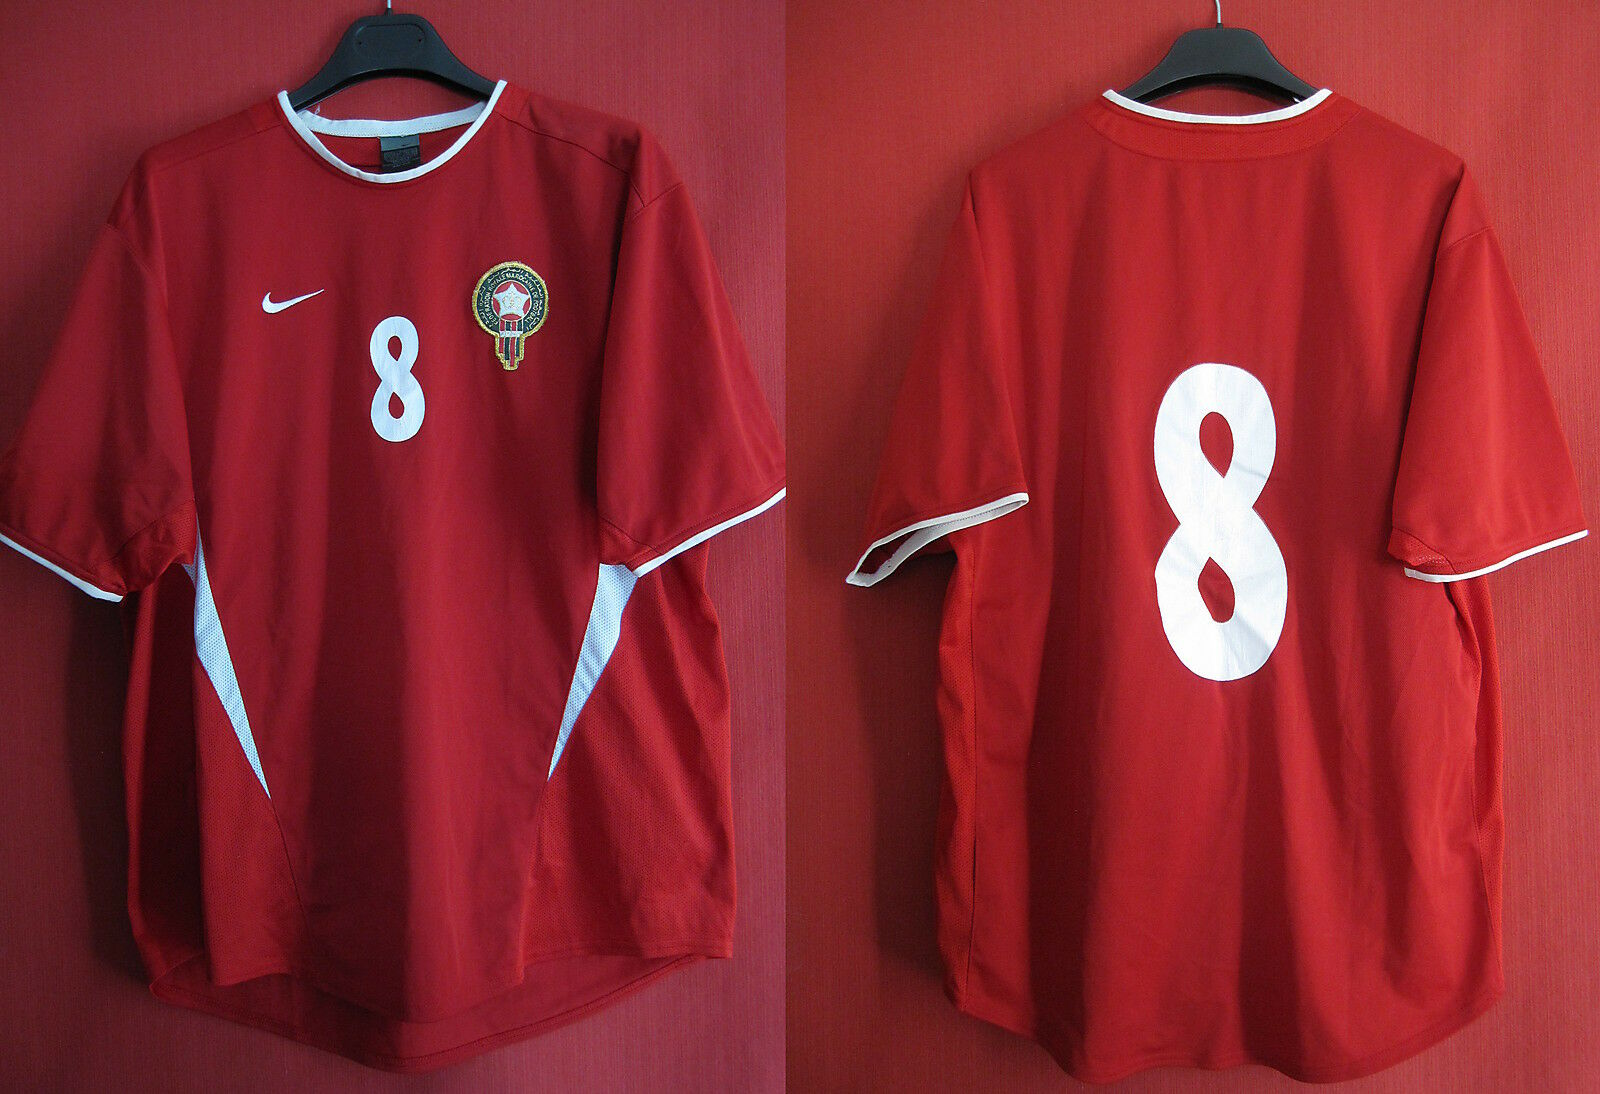 Maillot Morocco Olympic team Porté Maroc Shirt 2003 Tournament IFFT match worn